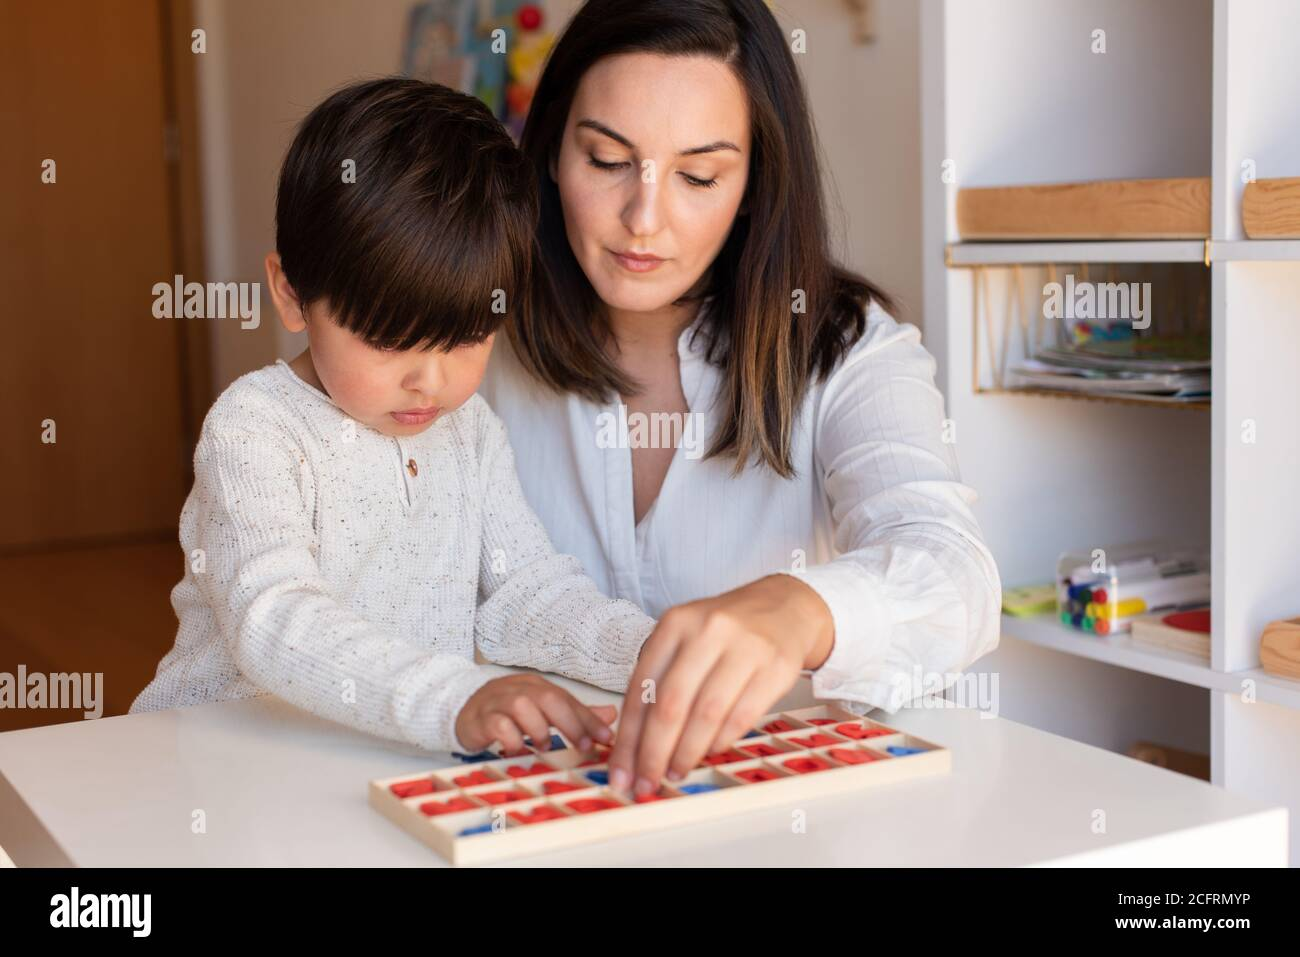 Lillte Kid learning to write and read with a alphabet and mother or teacher help. Homeshooling. Learning Community. Montessori School Stock Photo